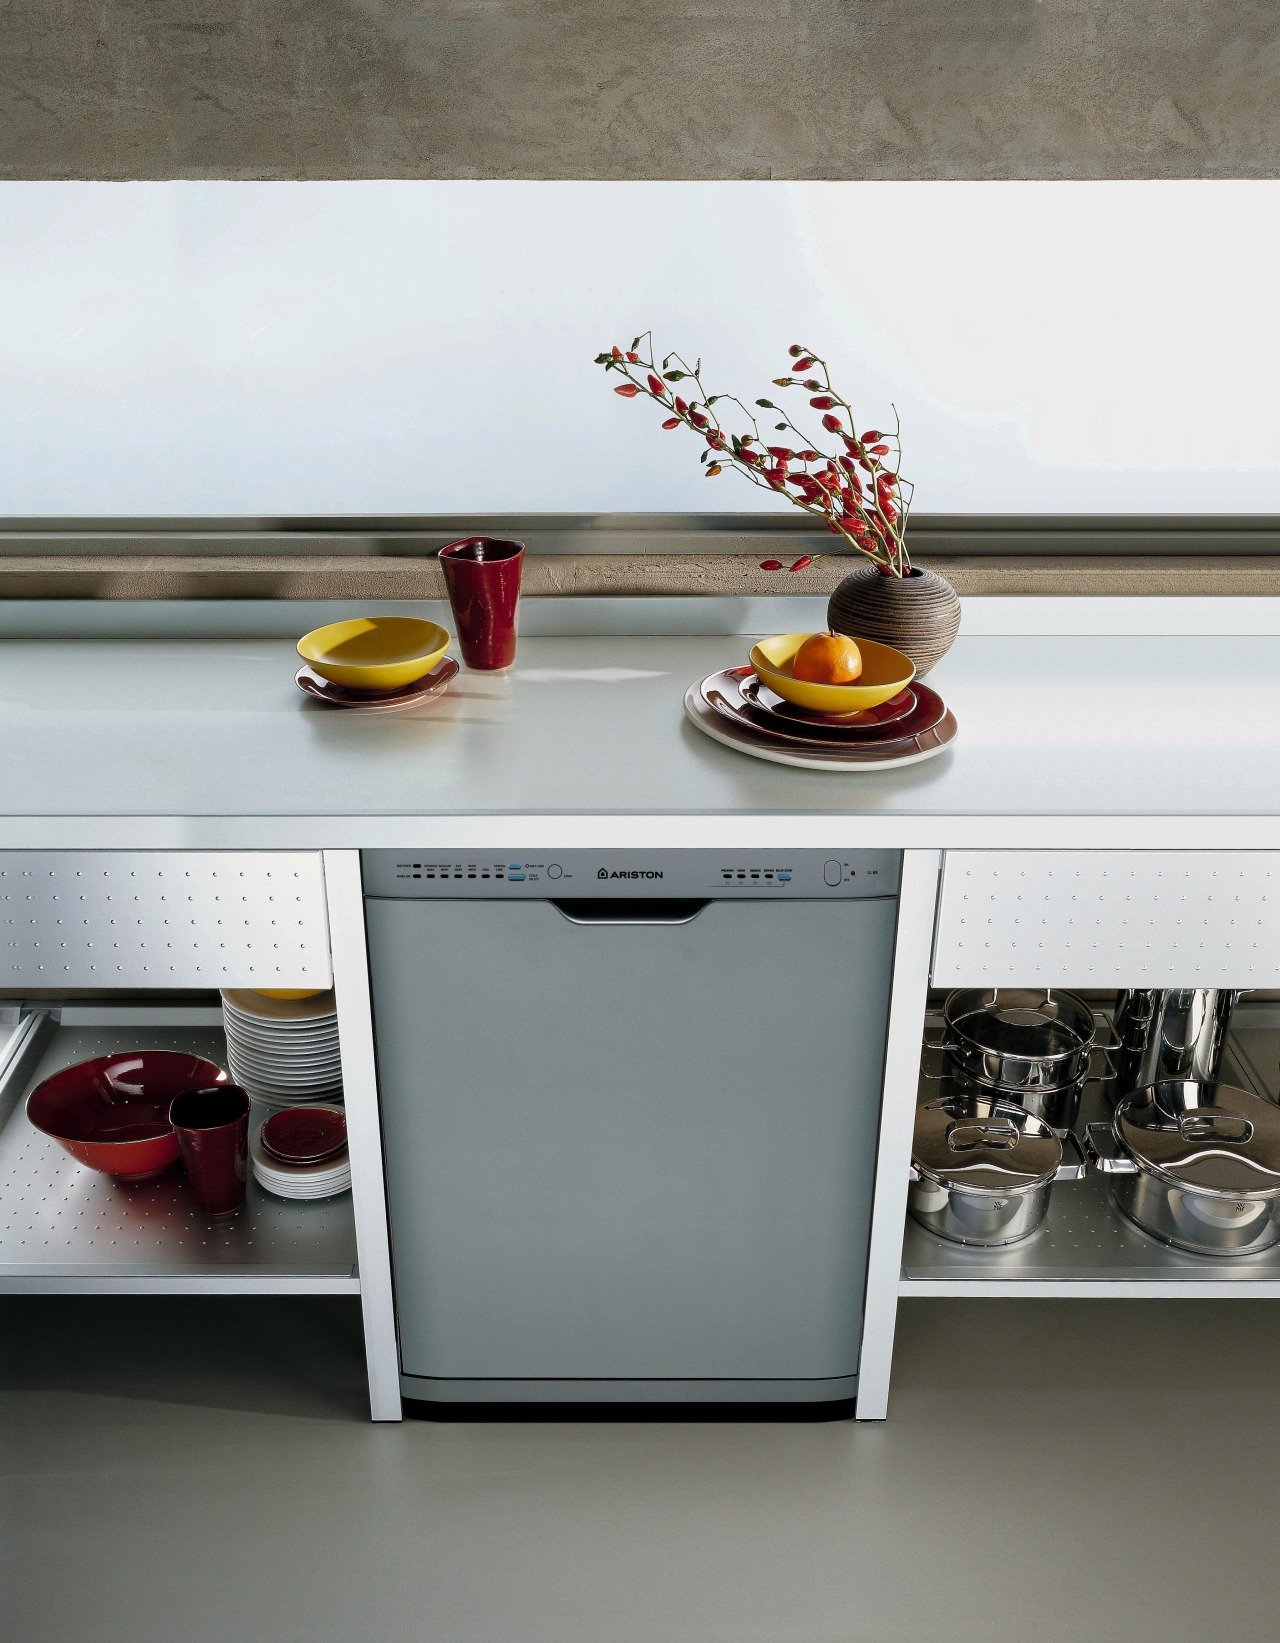 View of the dishwasher furniture, product design, shelf, table, gray, white